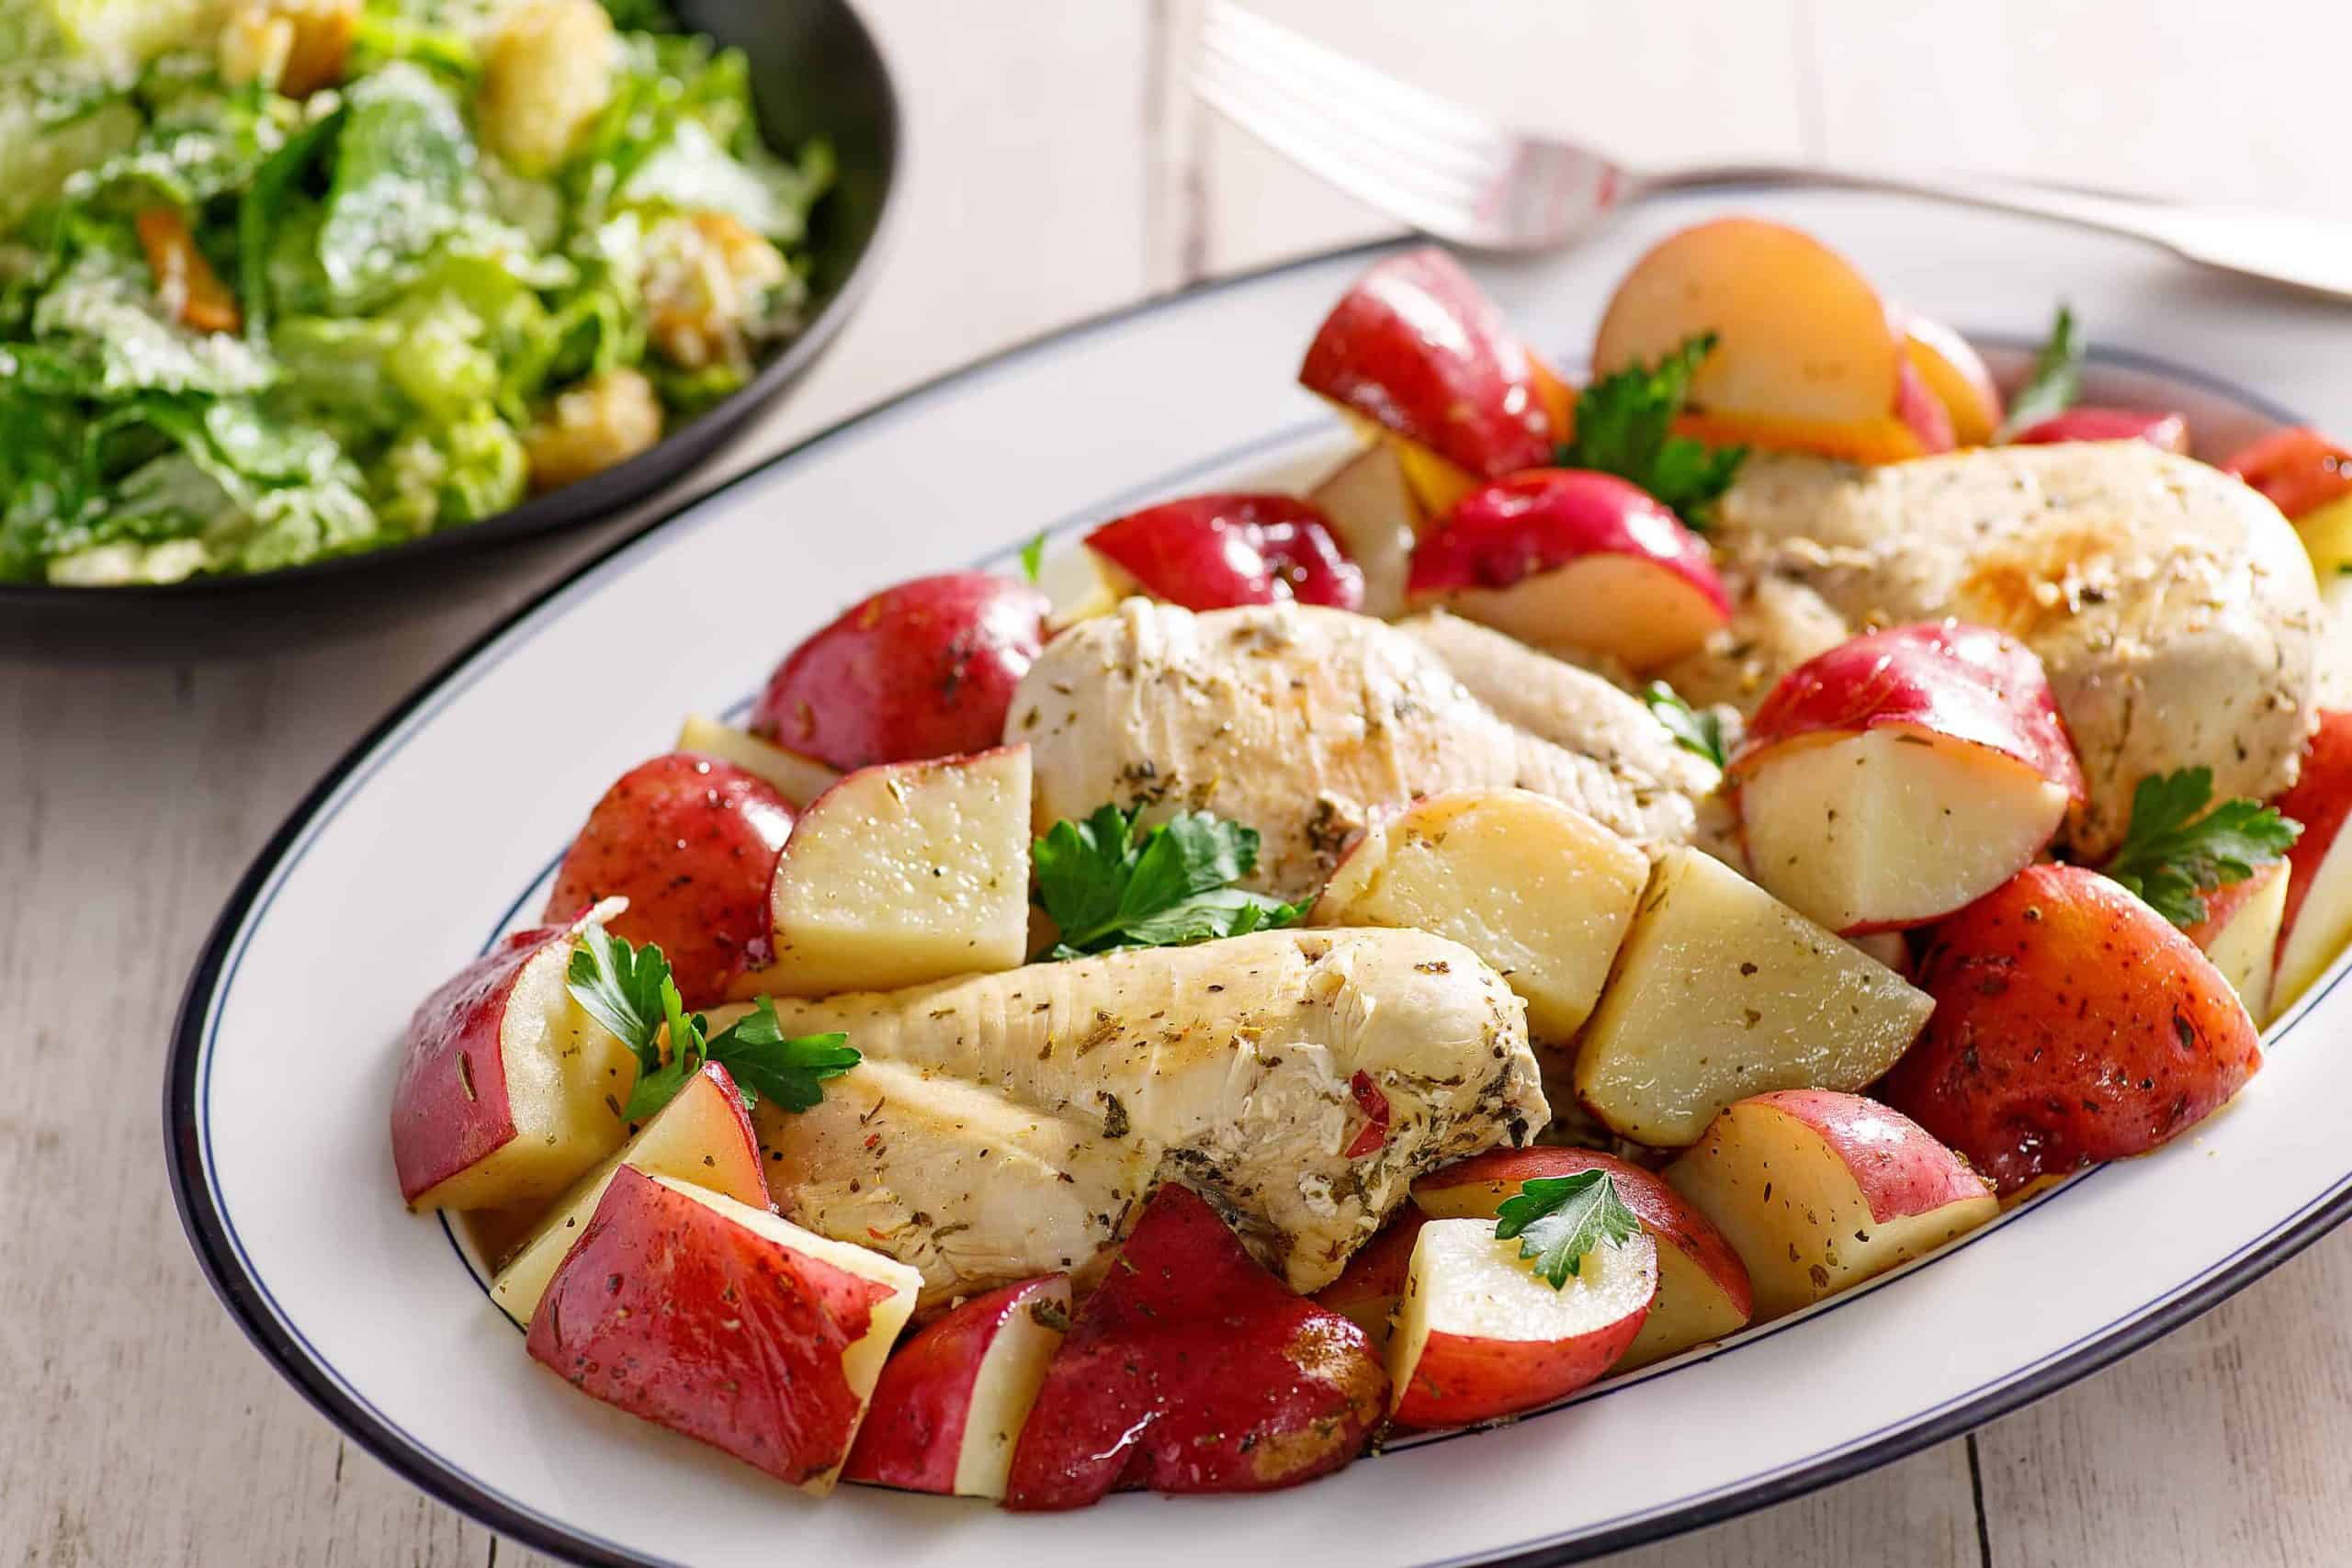 Italian Chicken And Potatoes A Simple Crock Pot Meal Southern